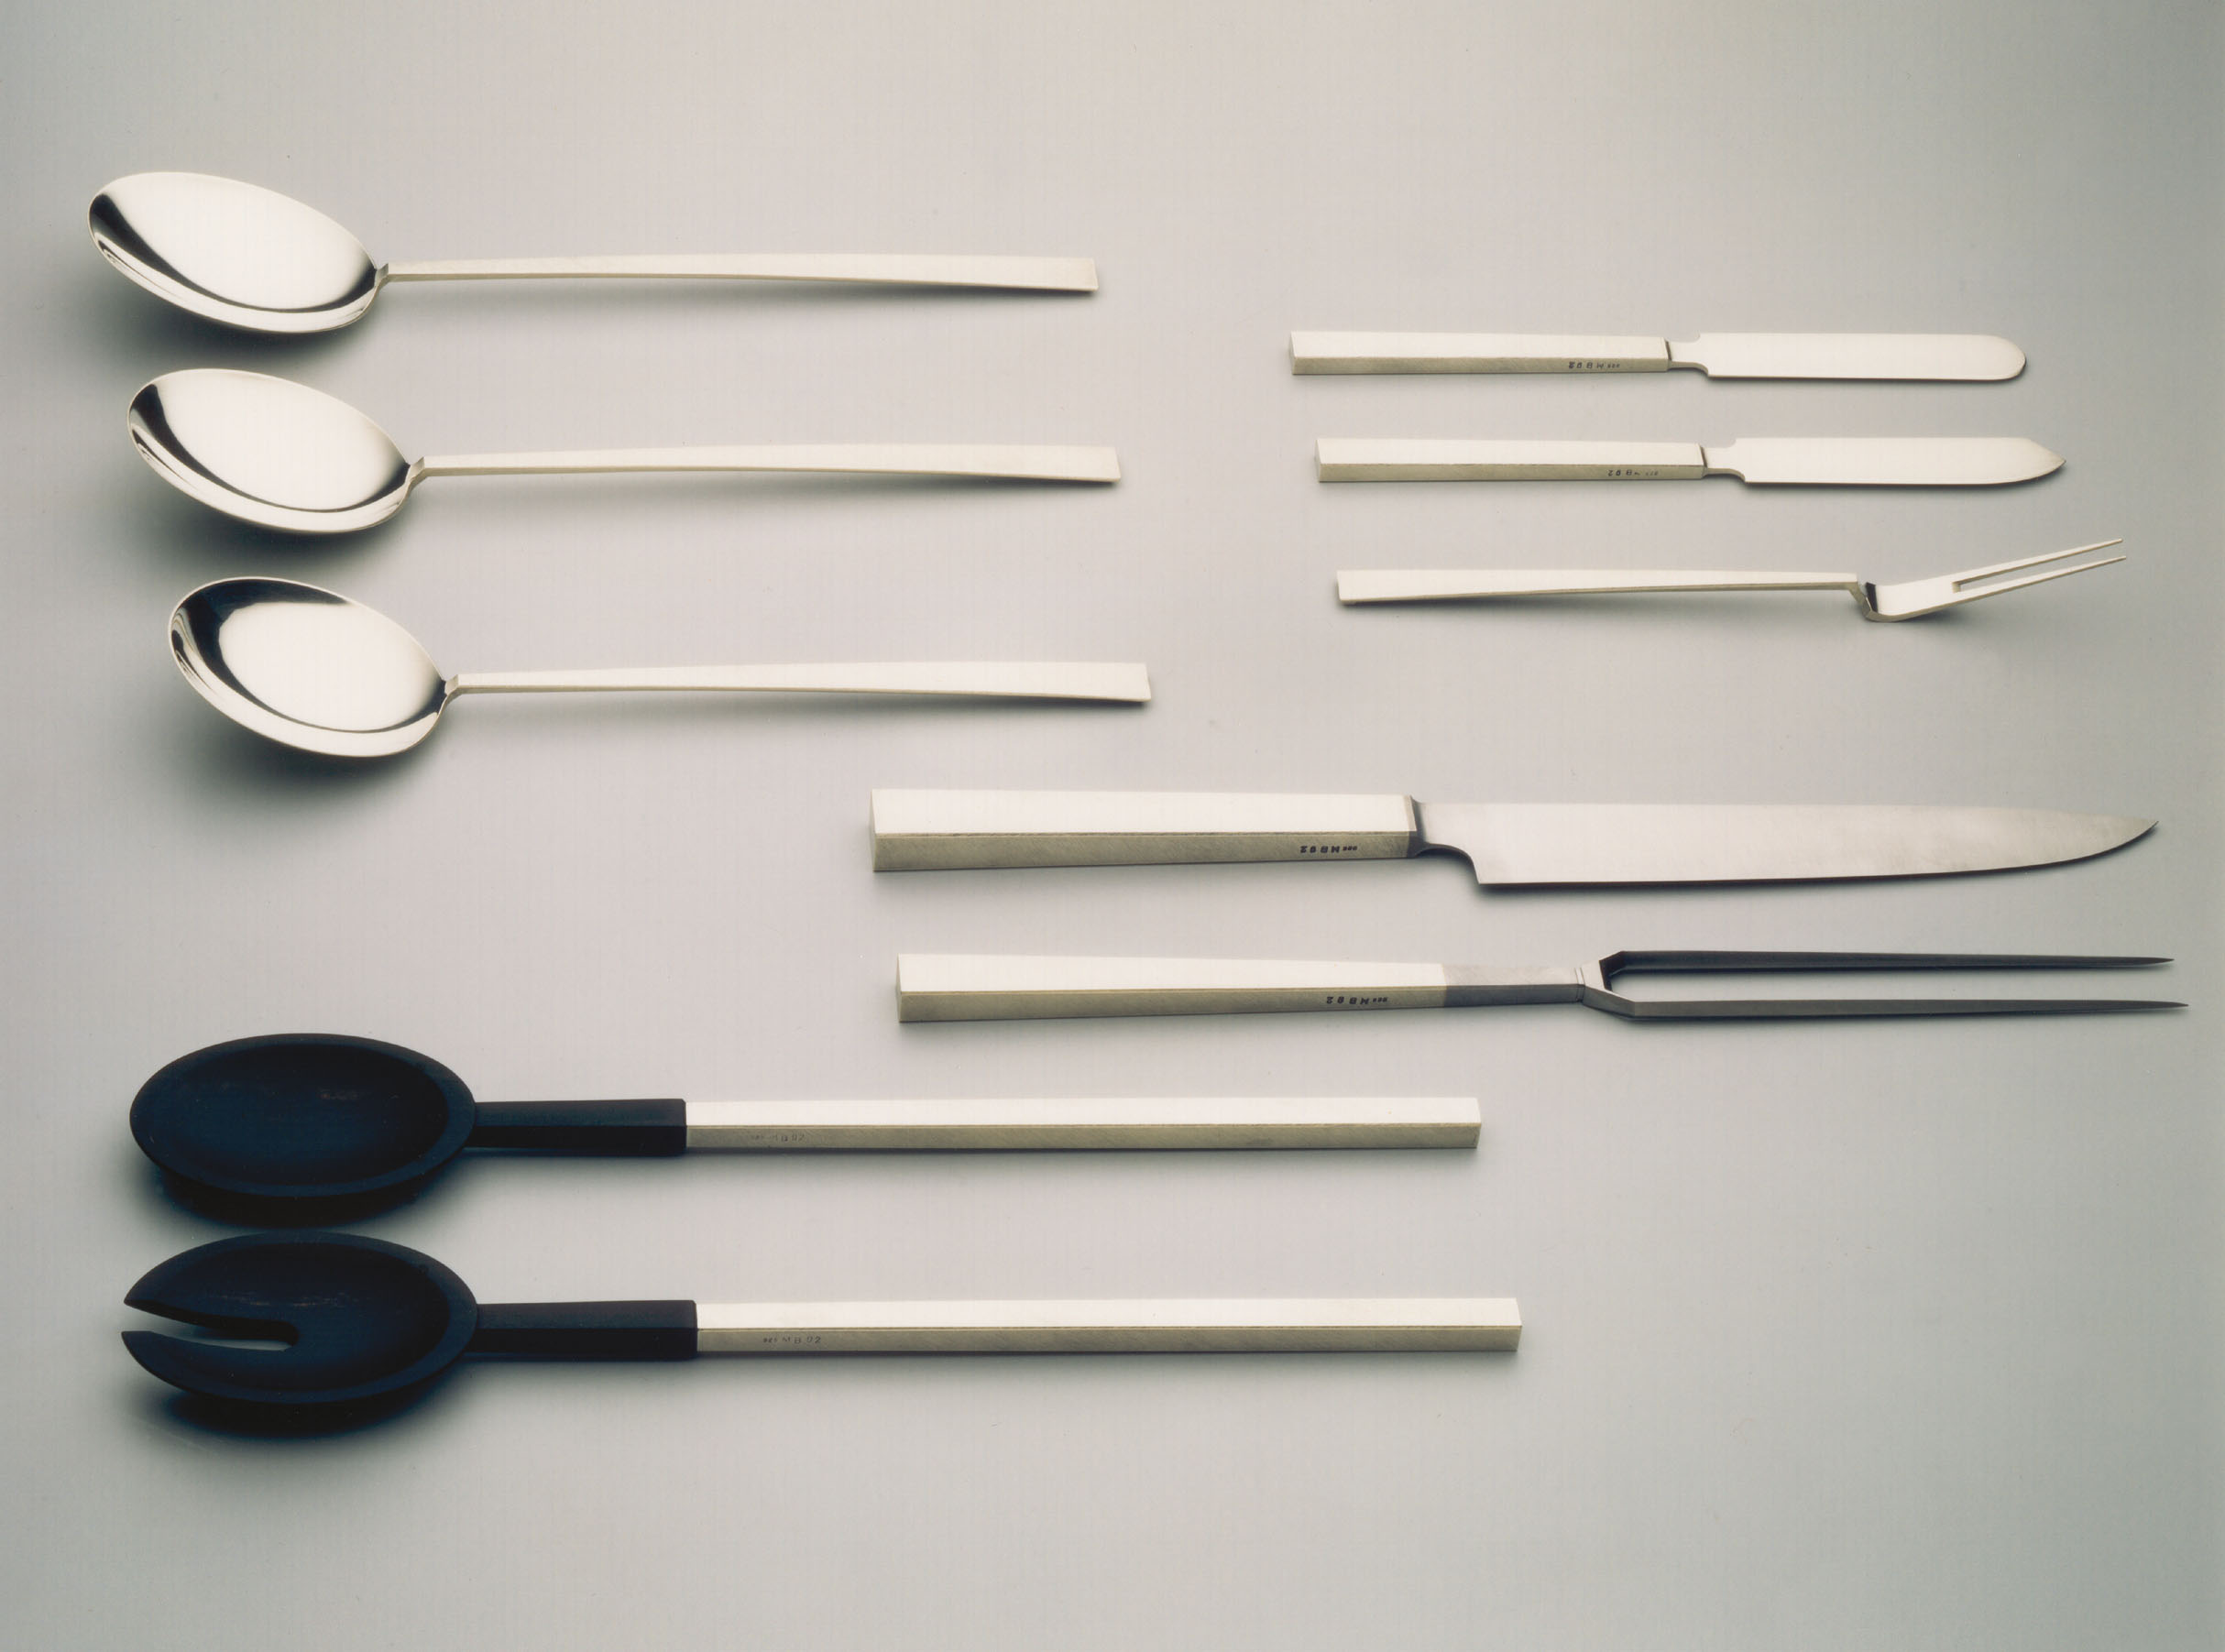 serving cutlery  1992  silver 925  high-grade steel  ebony  l  200-320  mm